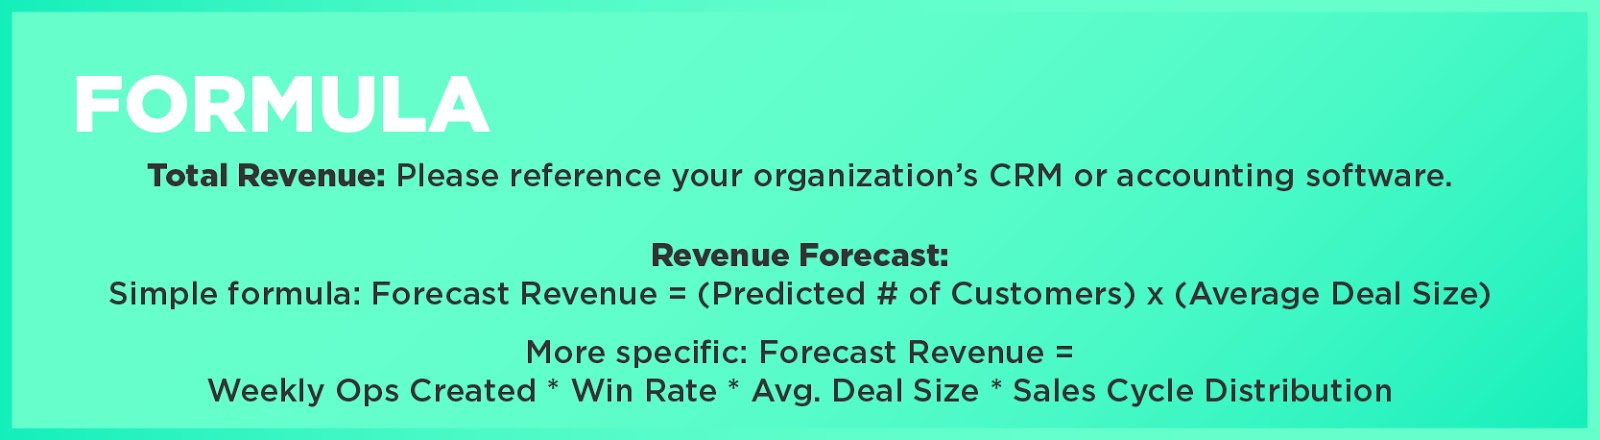 Formula: Total Revenue: Please reference your organization's CRM or accounting software.Revenue Forecast: Simple formula: Forecast Revenue = (Predicted # of Customers) x (Average Deal Size)More specific: Forecast Revenue = Weekly Ops Created * Win Rate * Avg. Deal Size * Sales Cycle Distribution